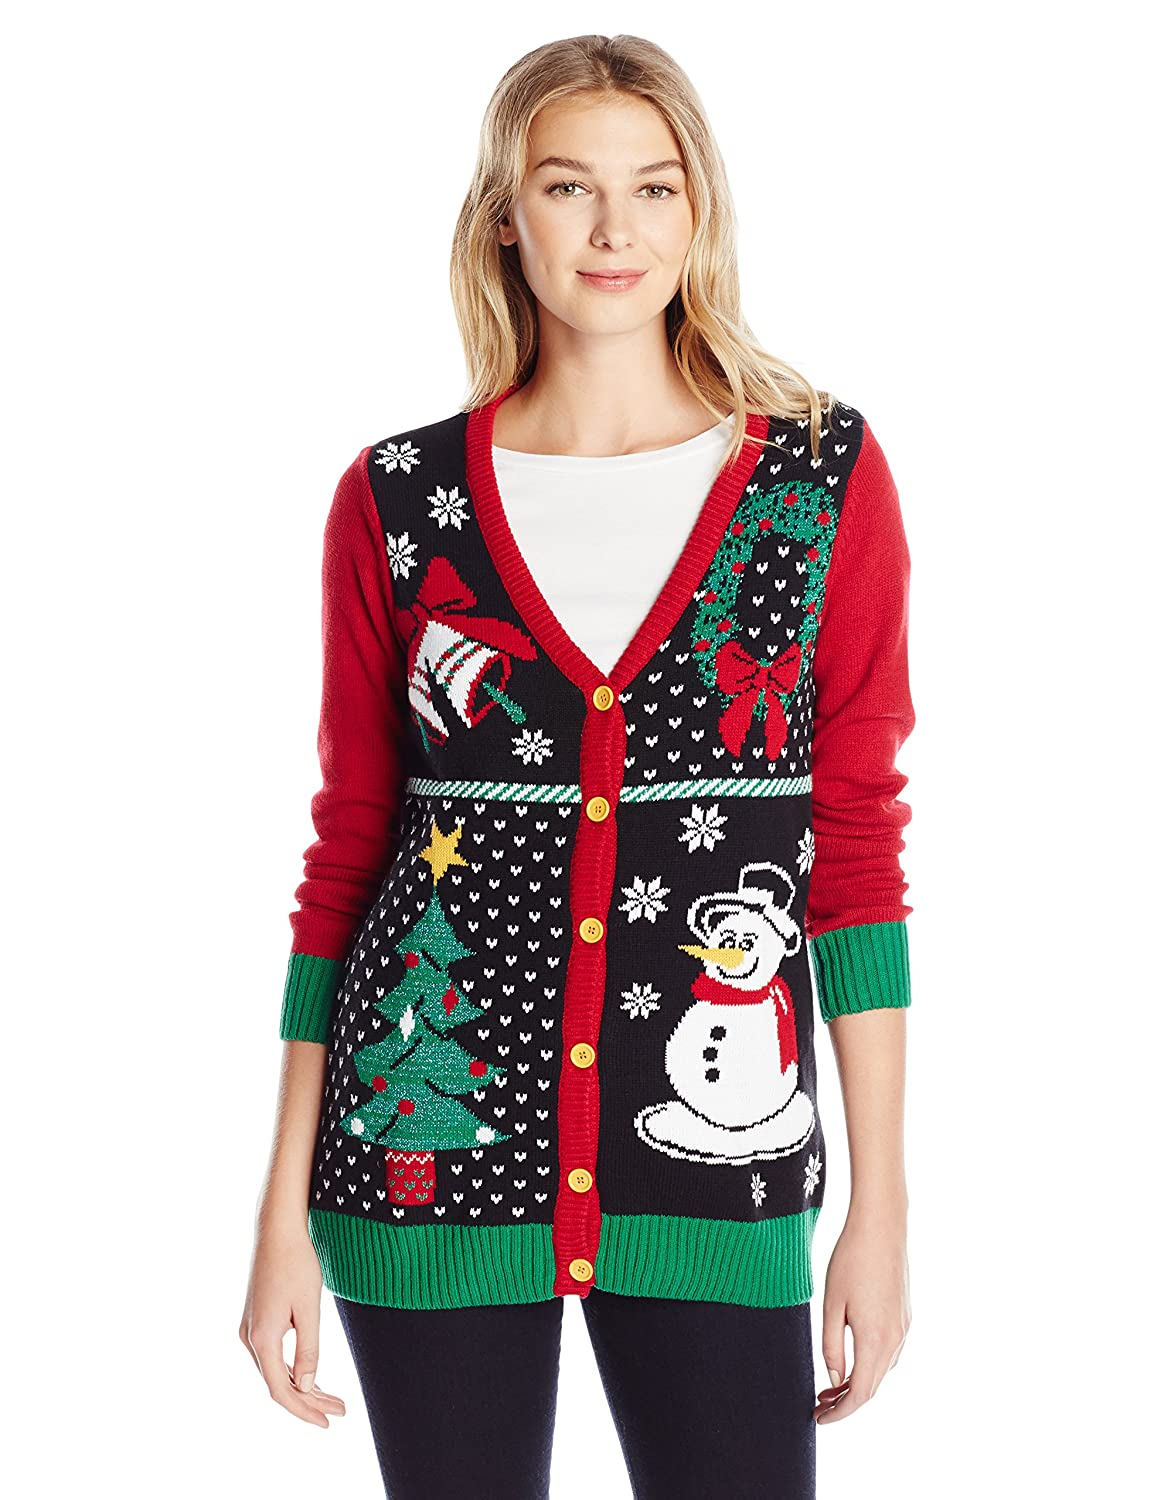 ugly christmas sweater womens button front christmas cardigan sweater at amazon womens clothing store - Womens Christmas Sweaters